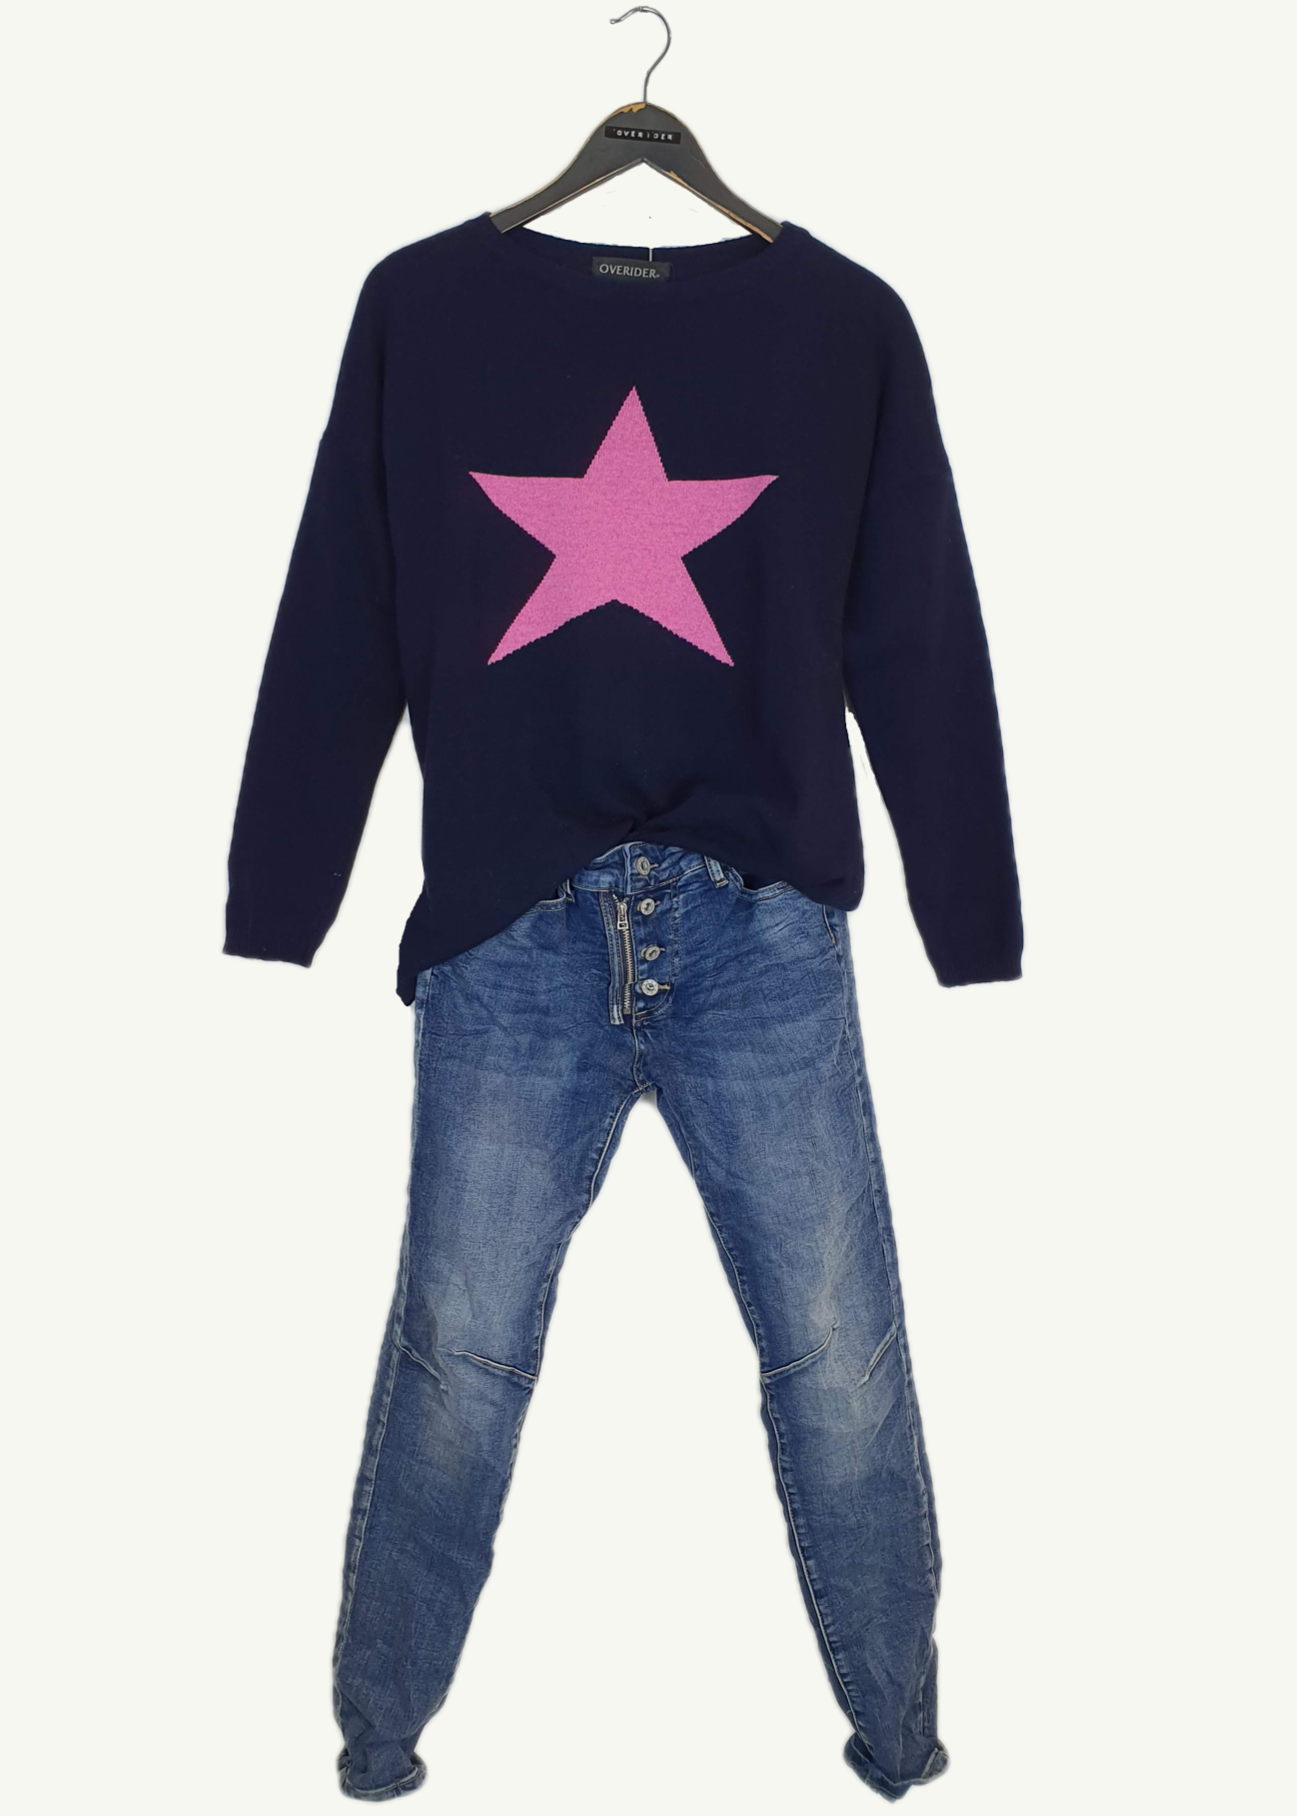 STAR BURST<br>Outfit Price: